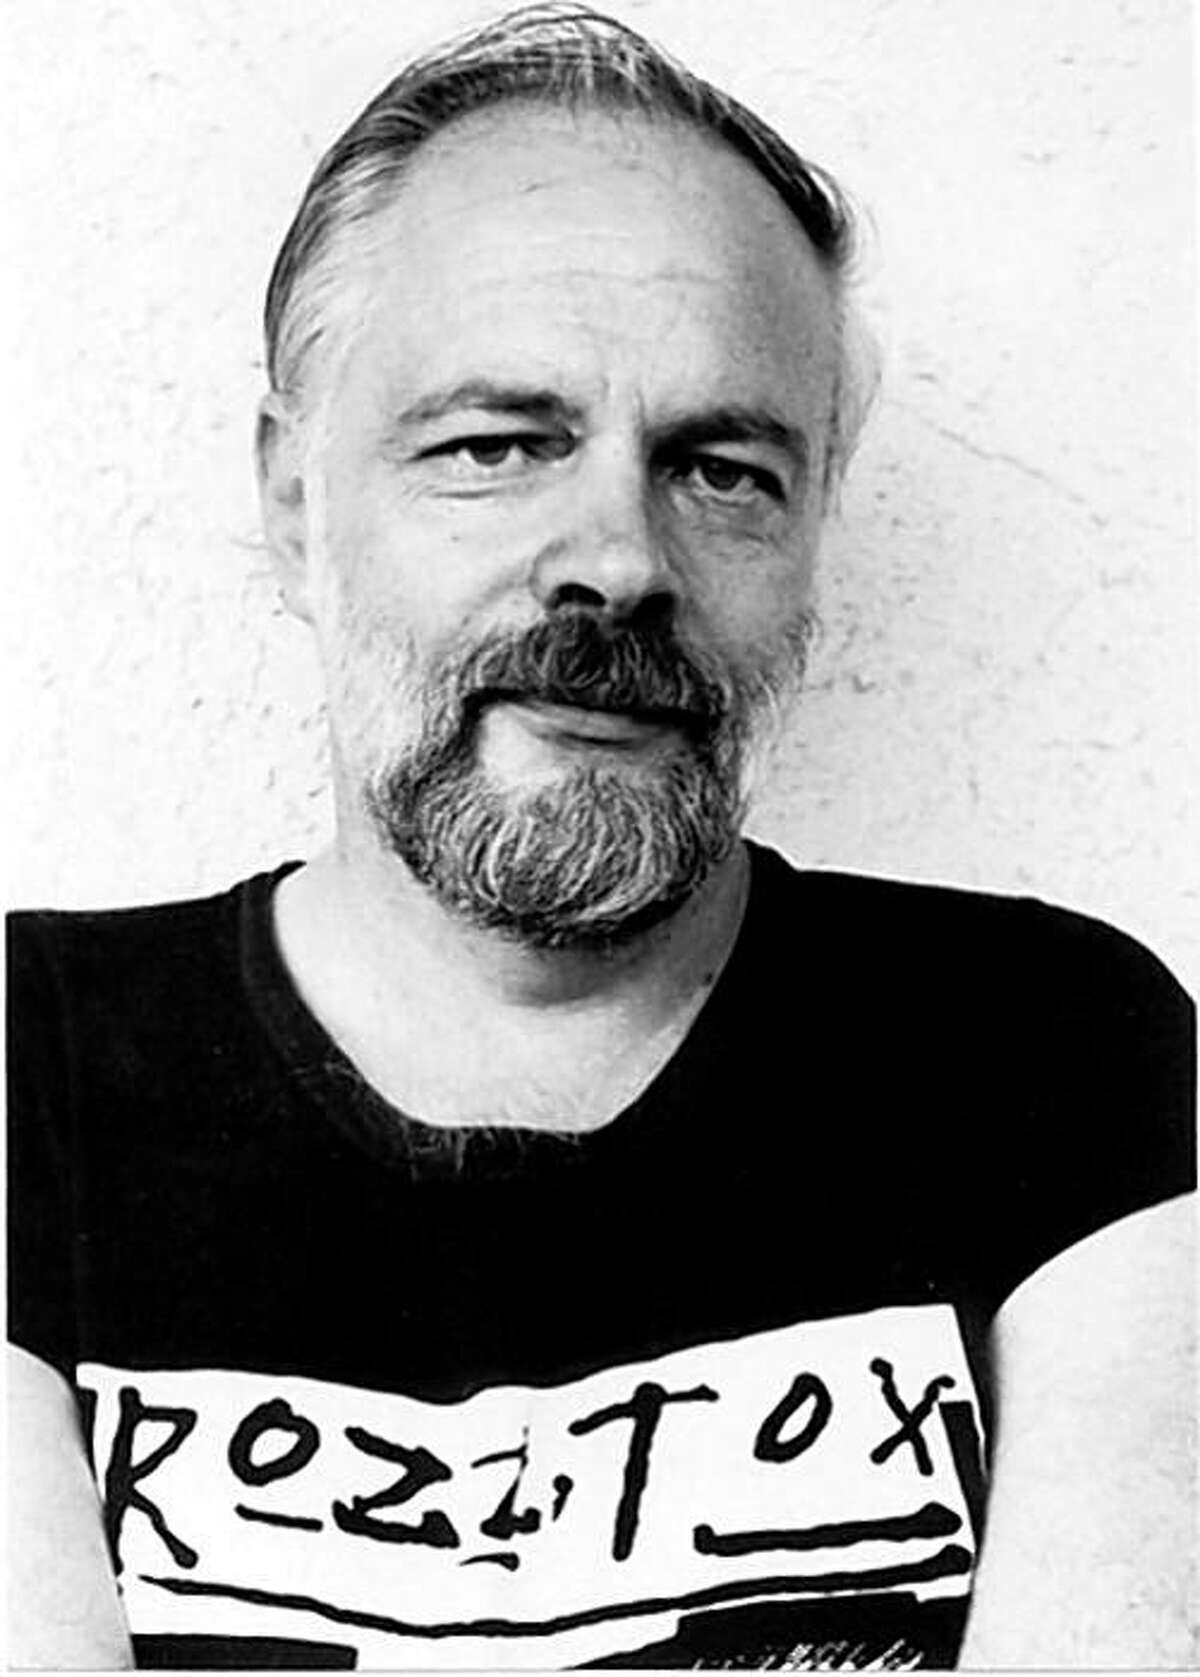 1981 photo of sci-fi writer Philip K. Dick who inspired such films as Blade Runner, Minority Report, Total Recall and paycheck.